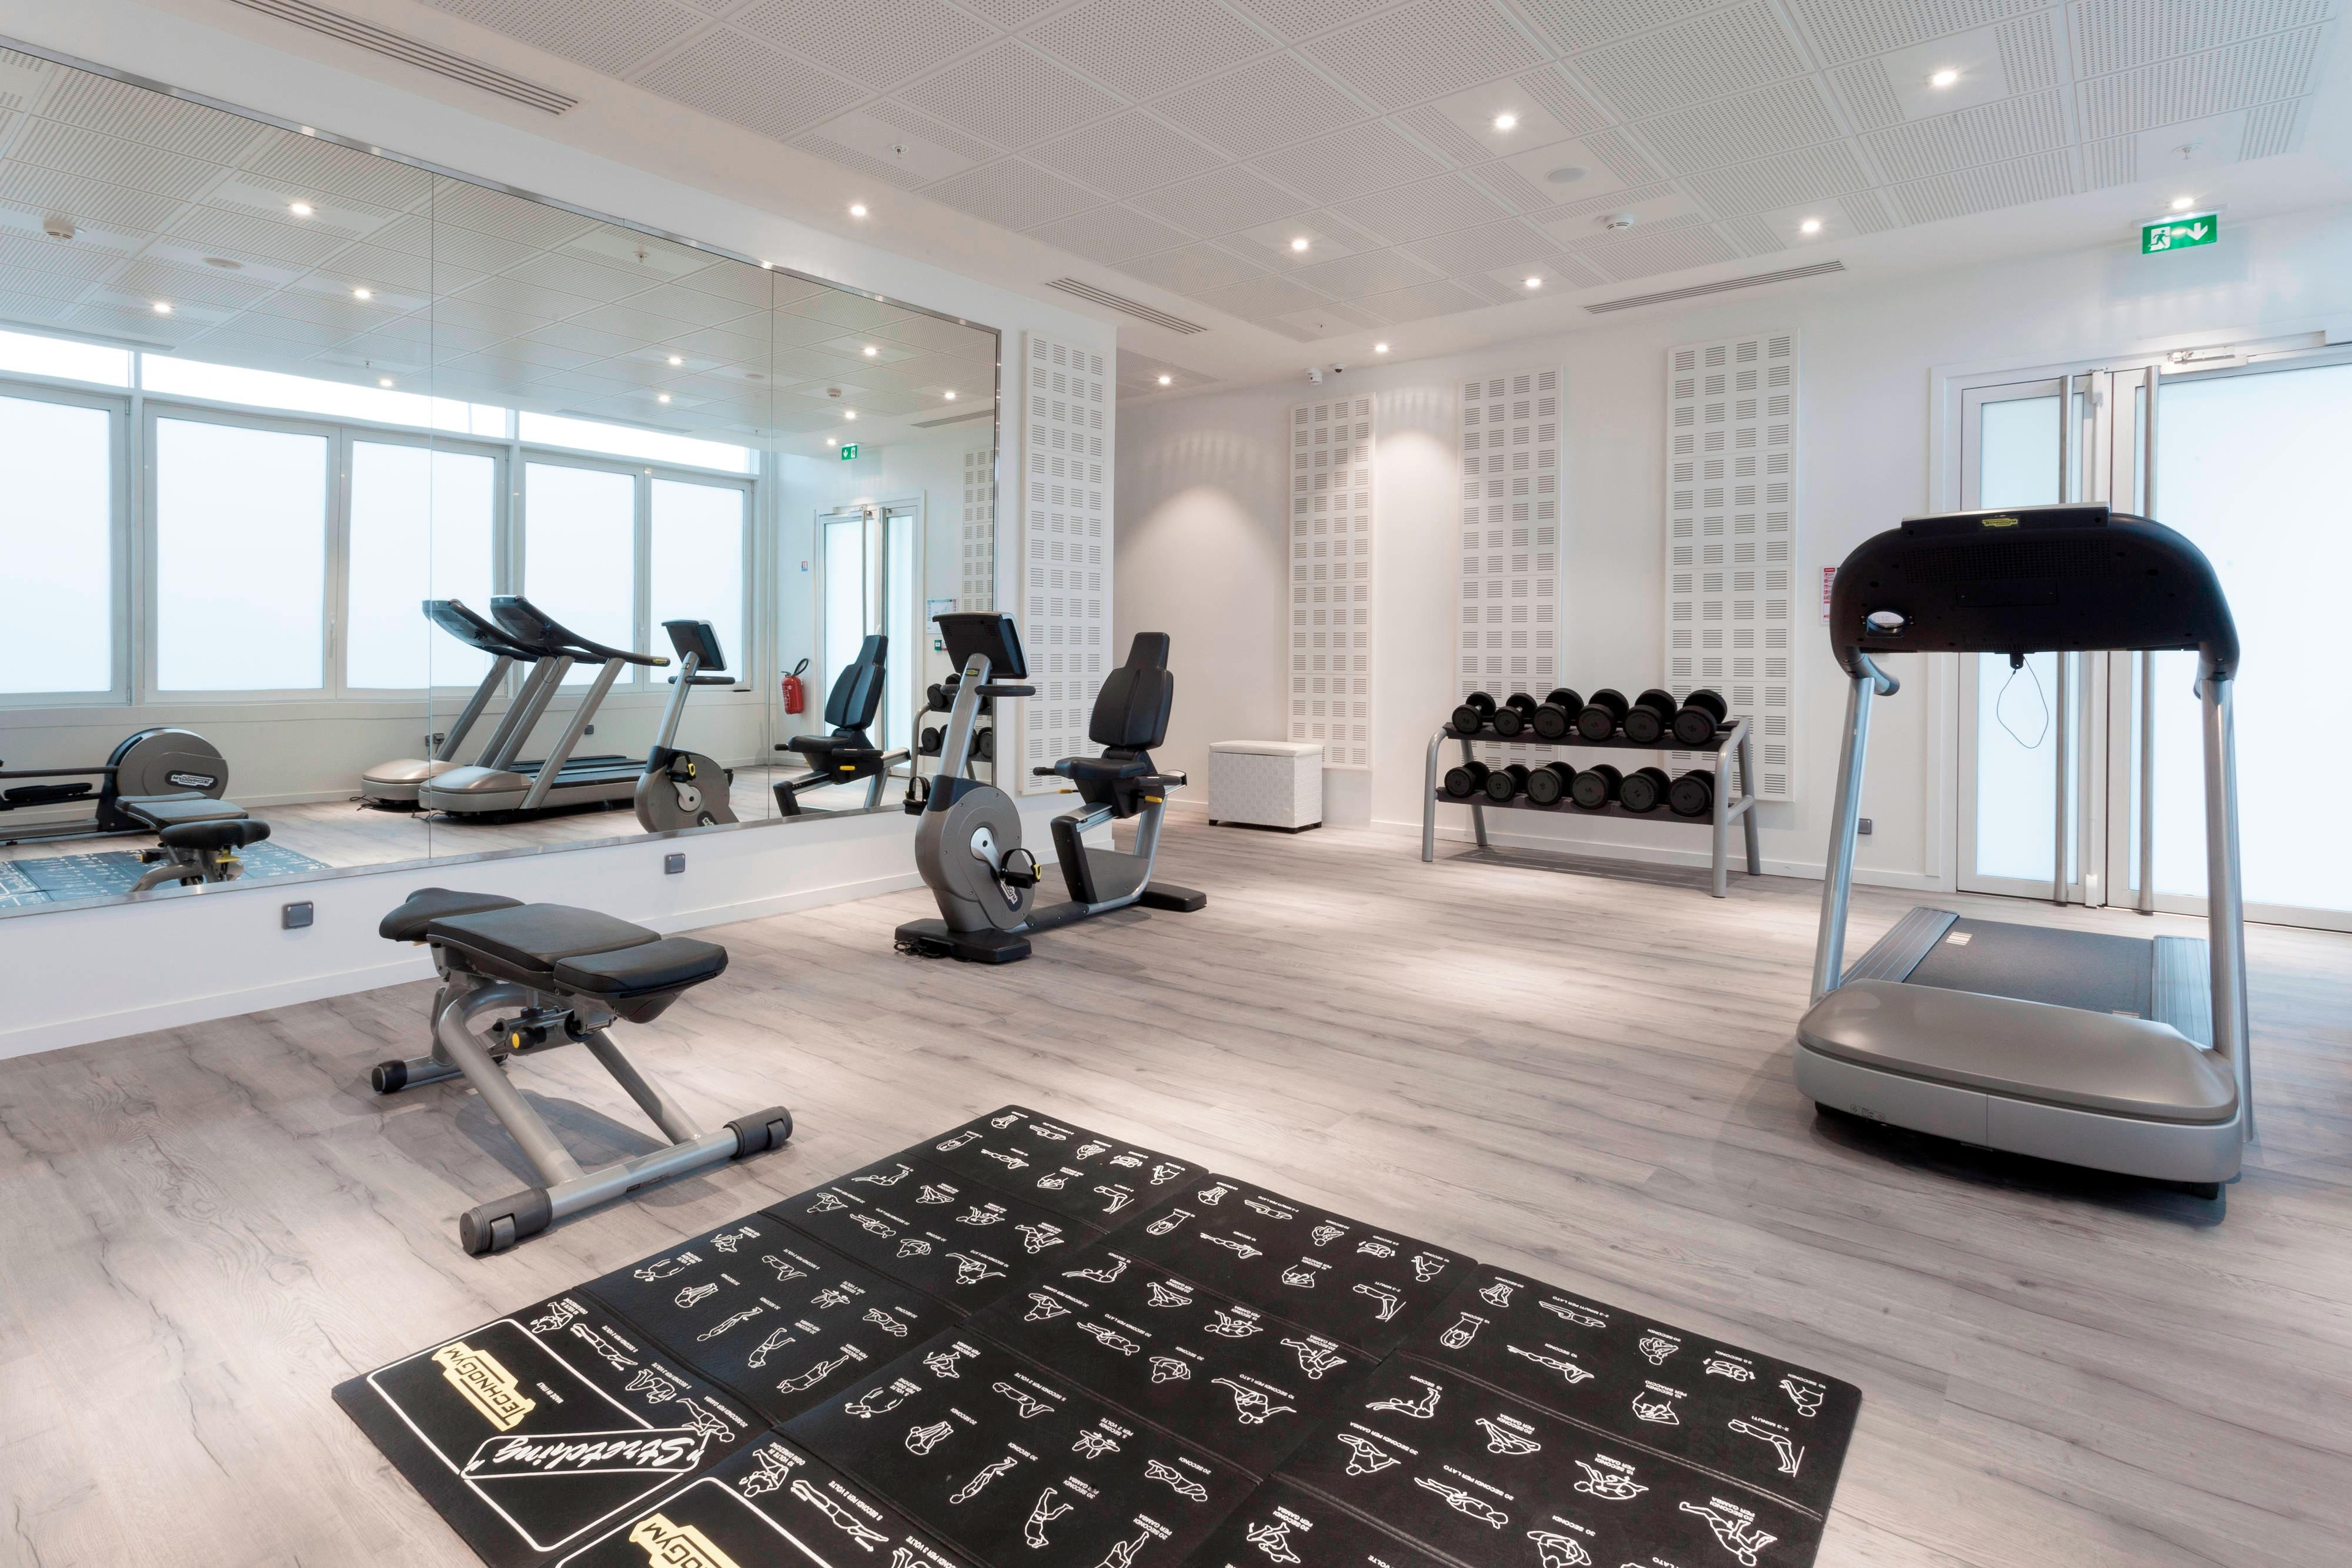 Fitness Center in Le Bourget Hotel